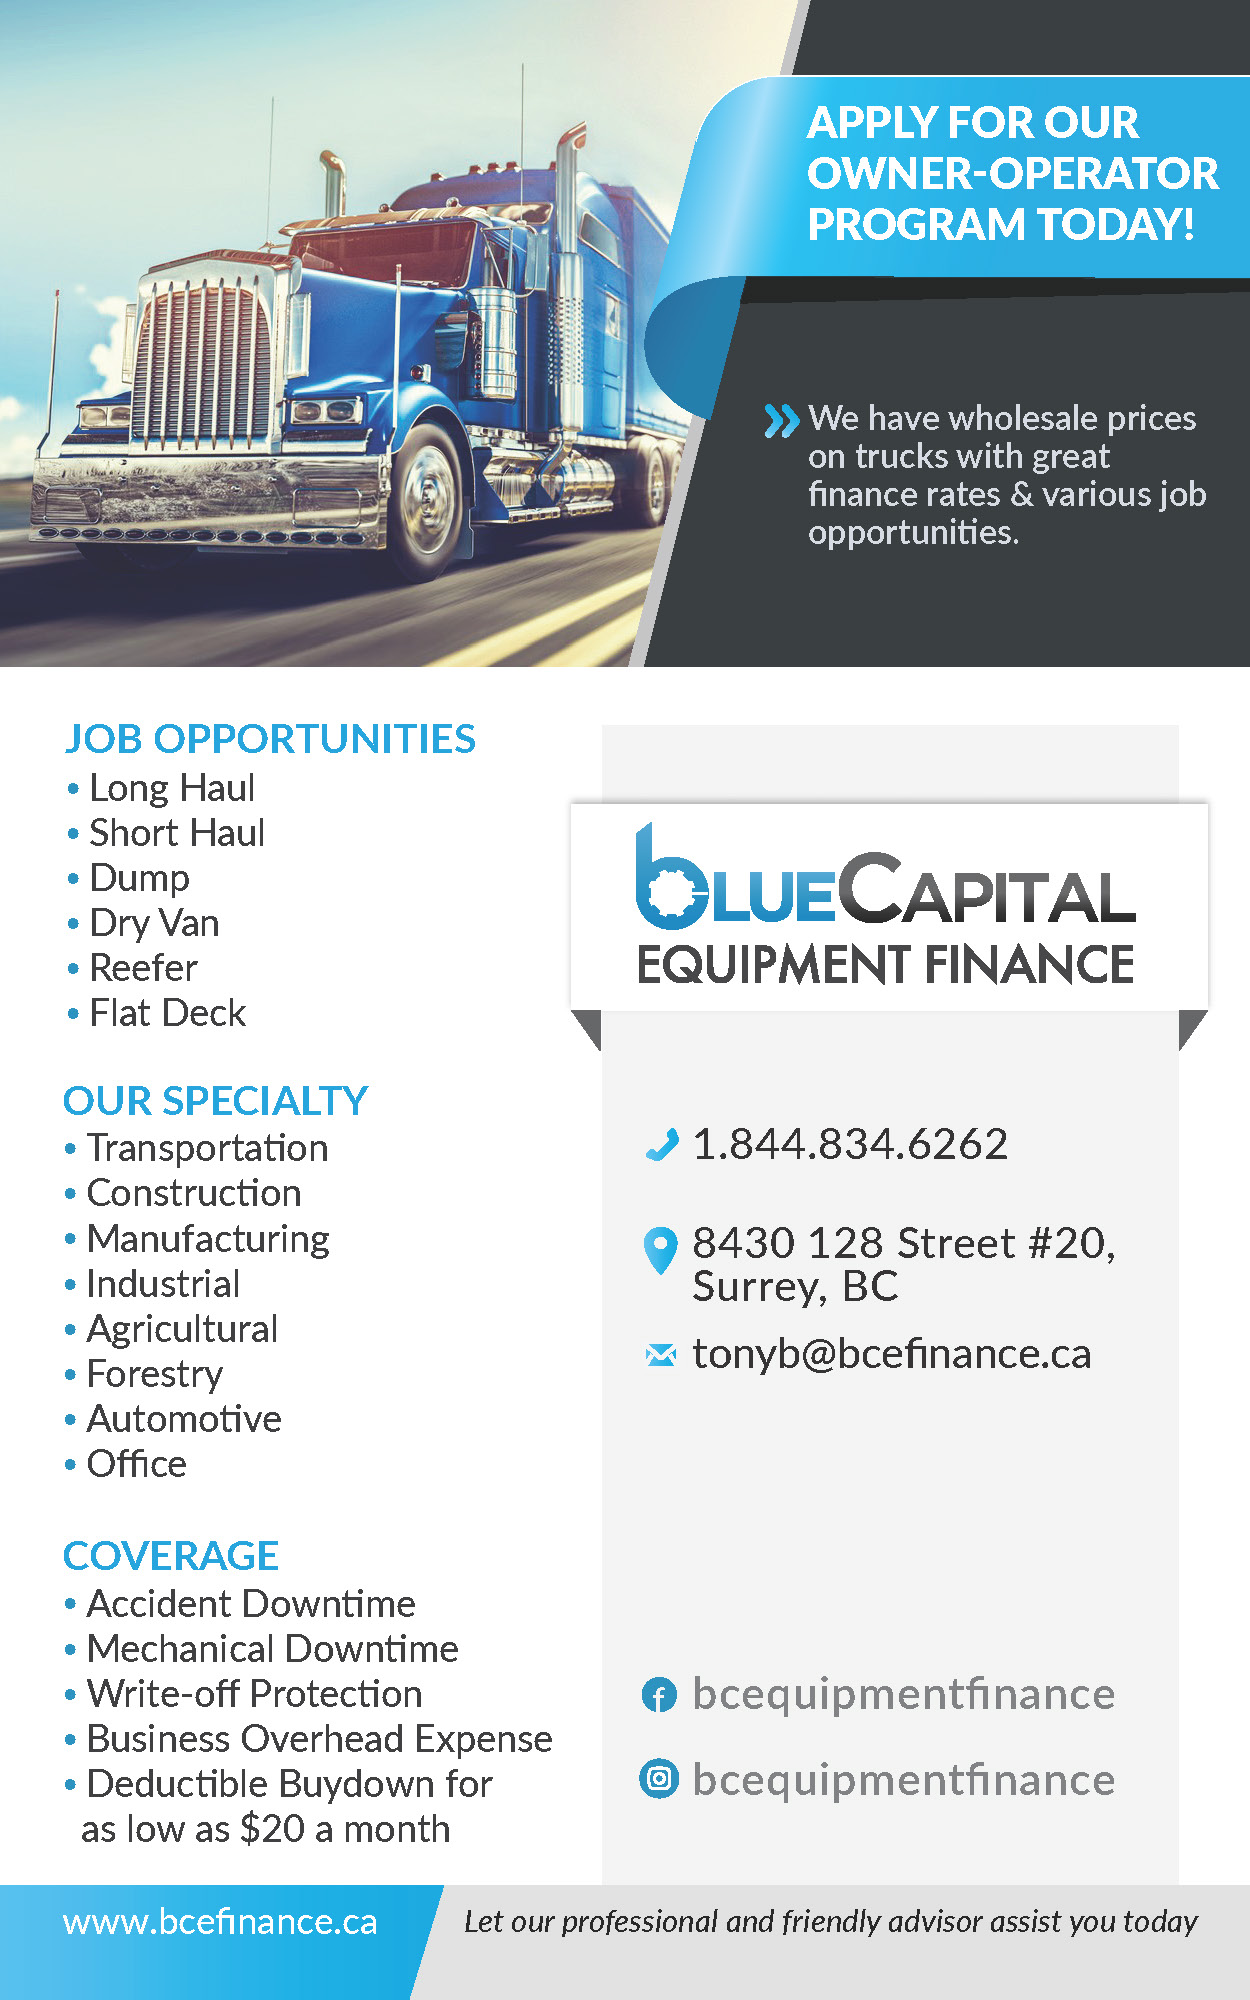 blue-capital-equipment-finance-kGgBWHD.jpeg